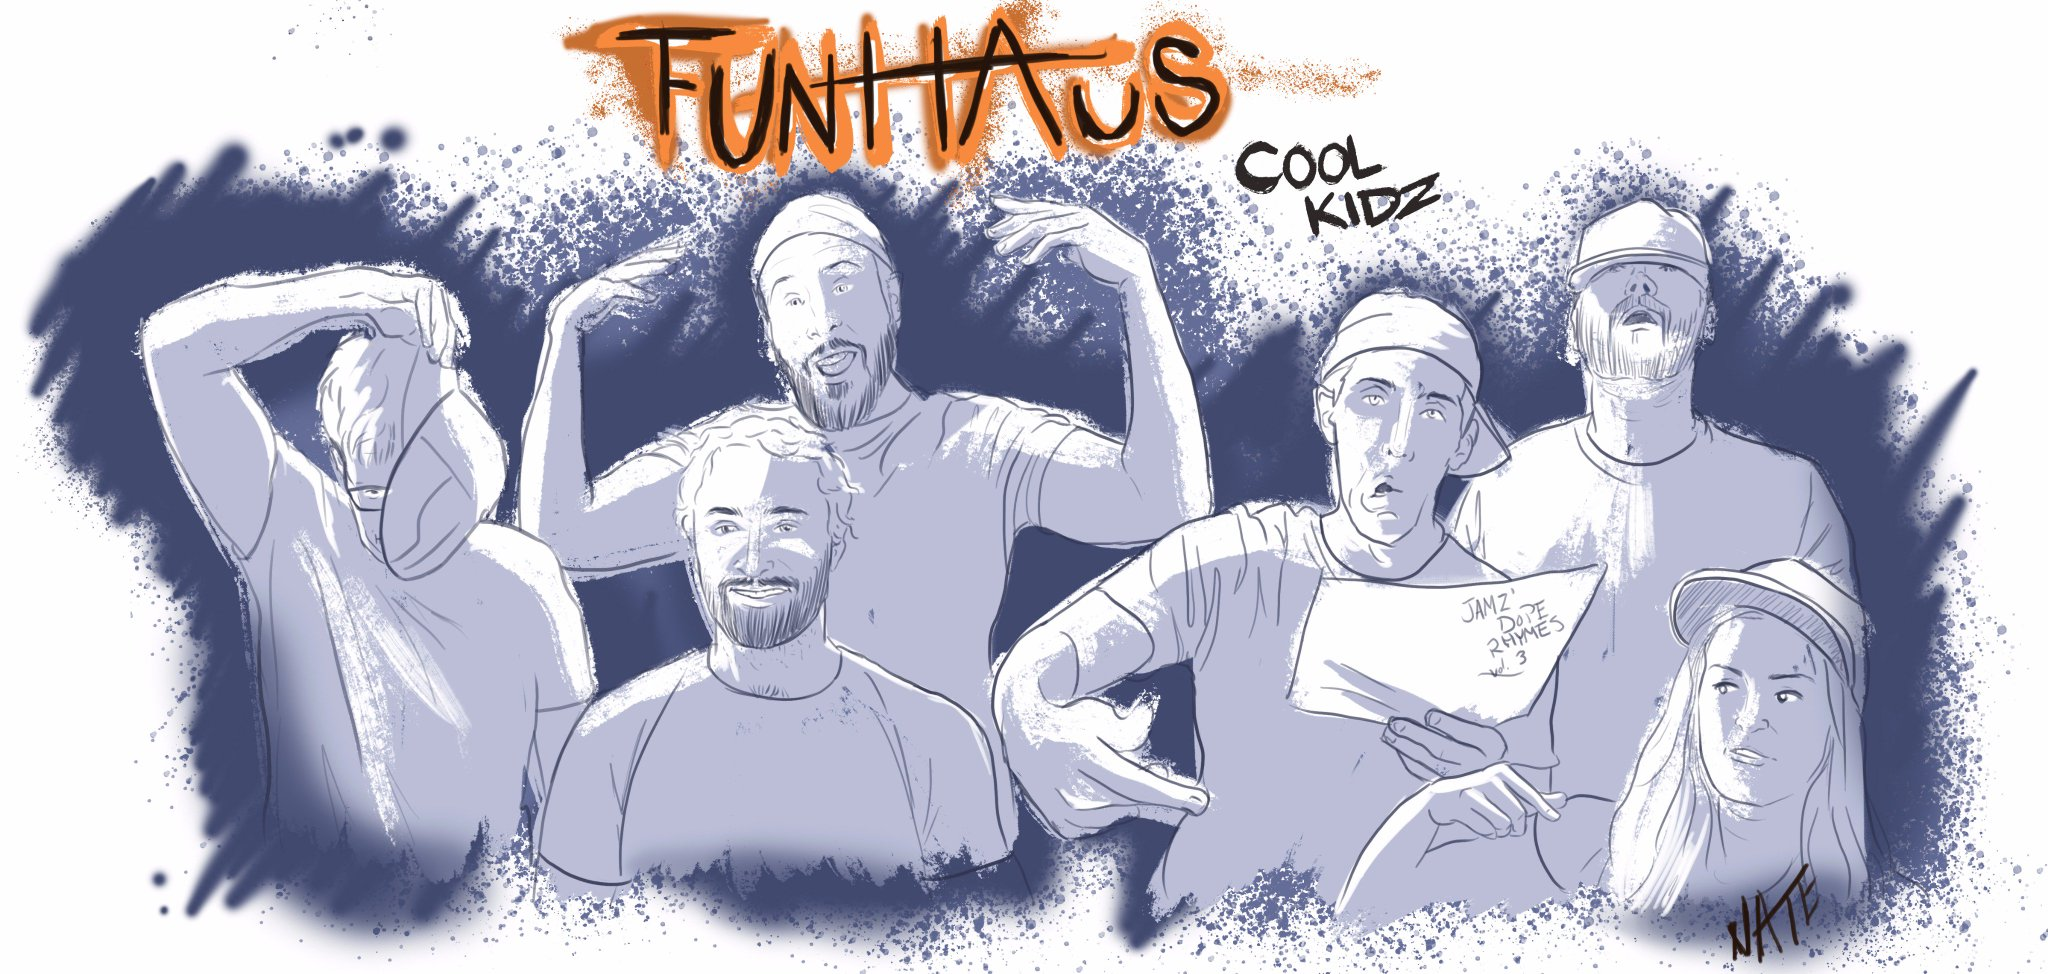 The crew in @FunhausTeam are some of the coolest and hip entertainers I watch https://t.co/fyrSRJkn0I